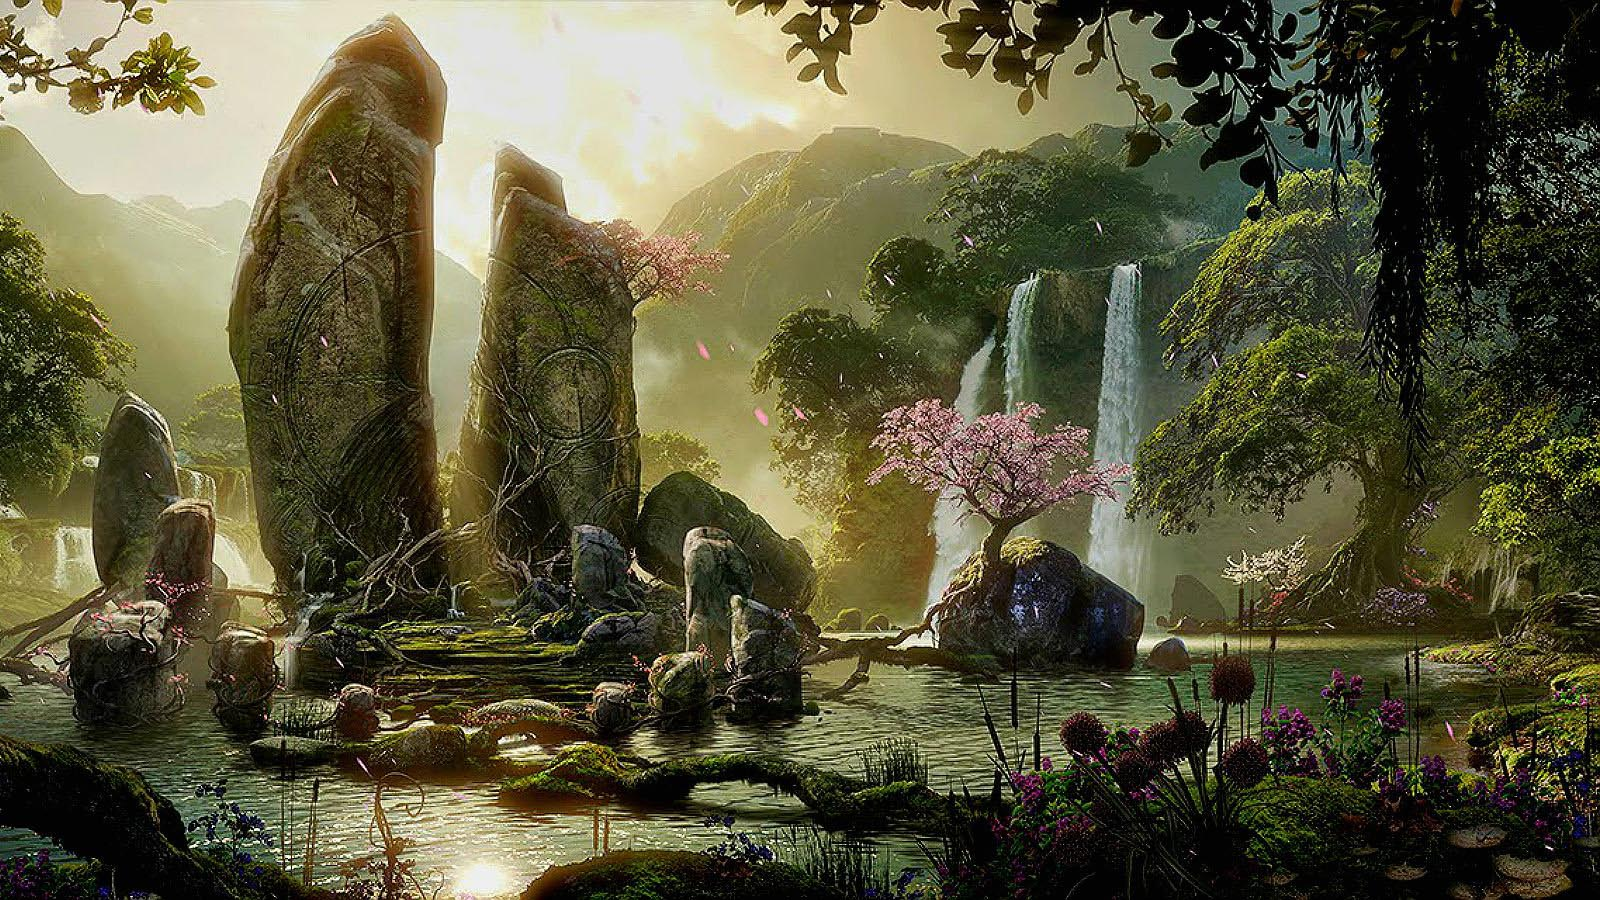 69 Enchanted Forest Backgrounds On Wallpapersafari